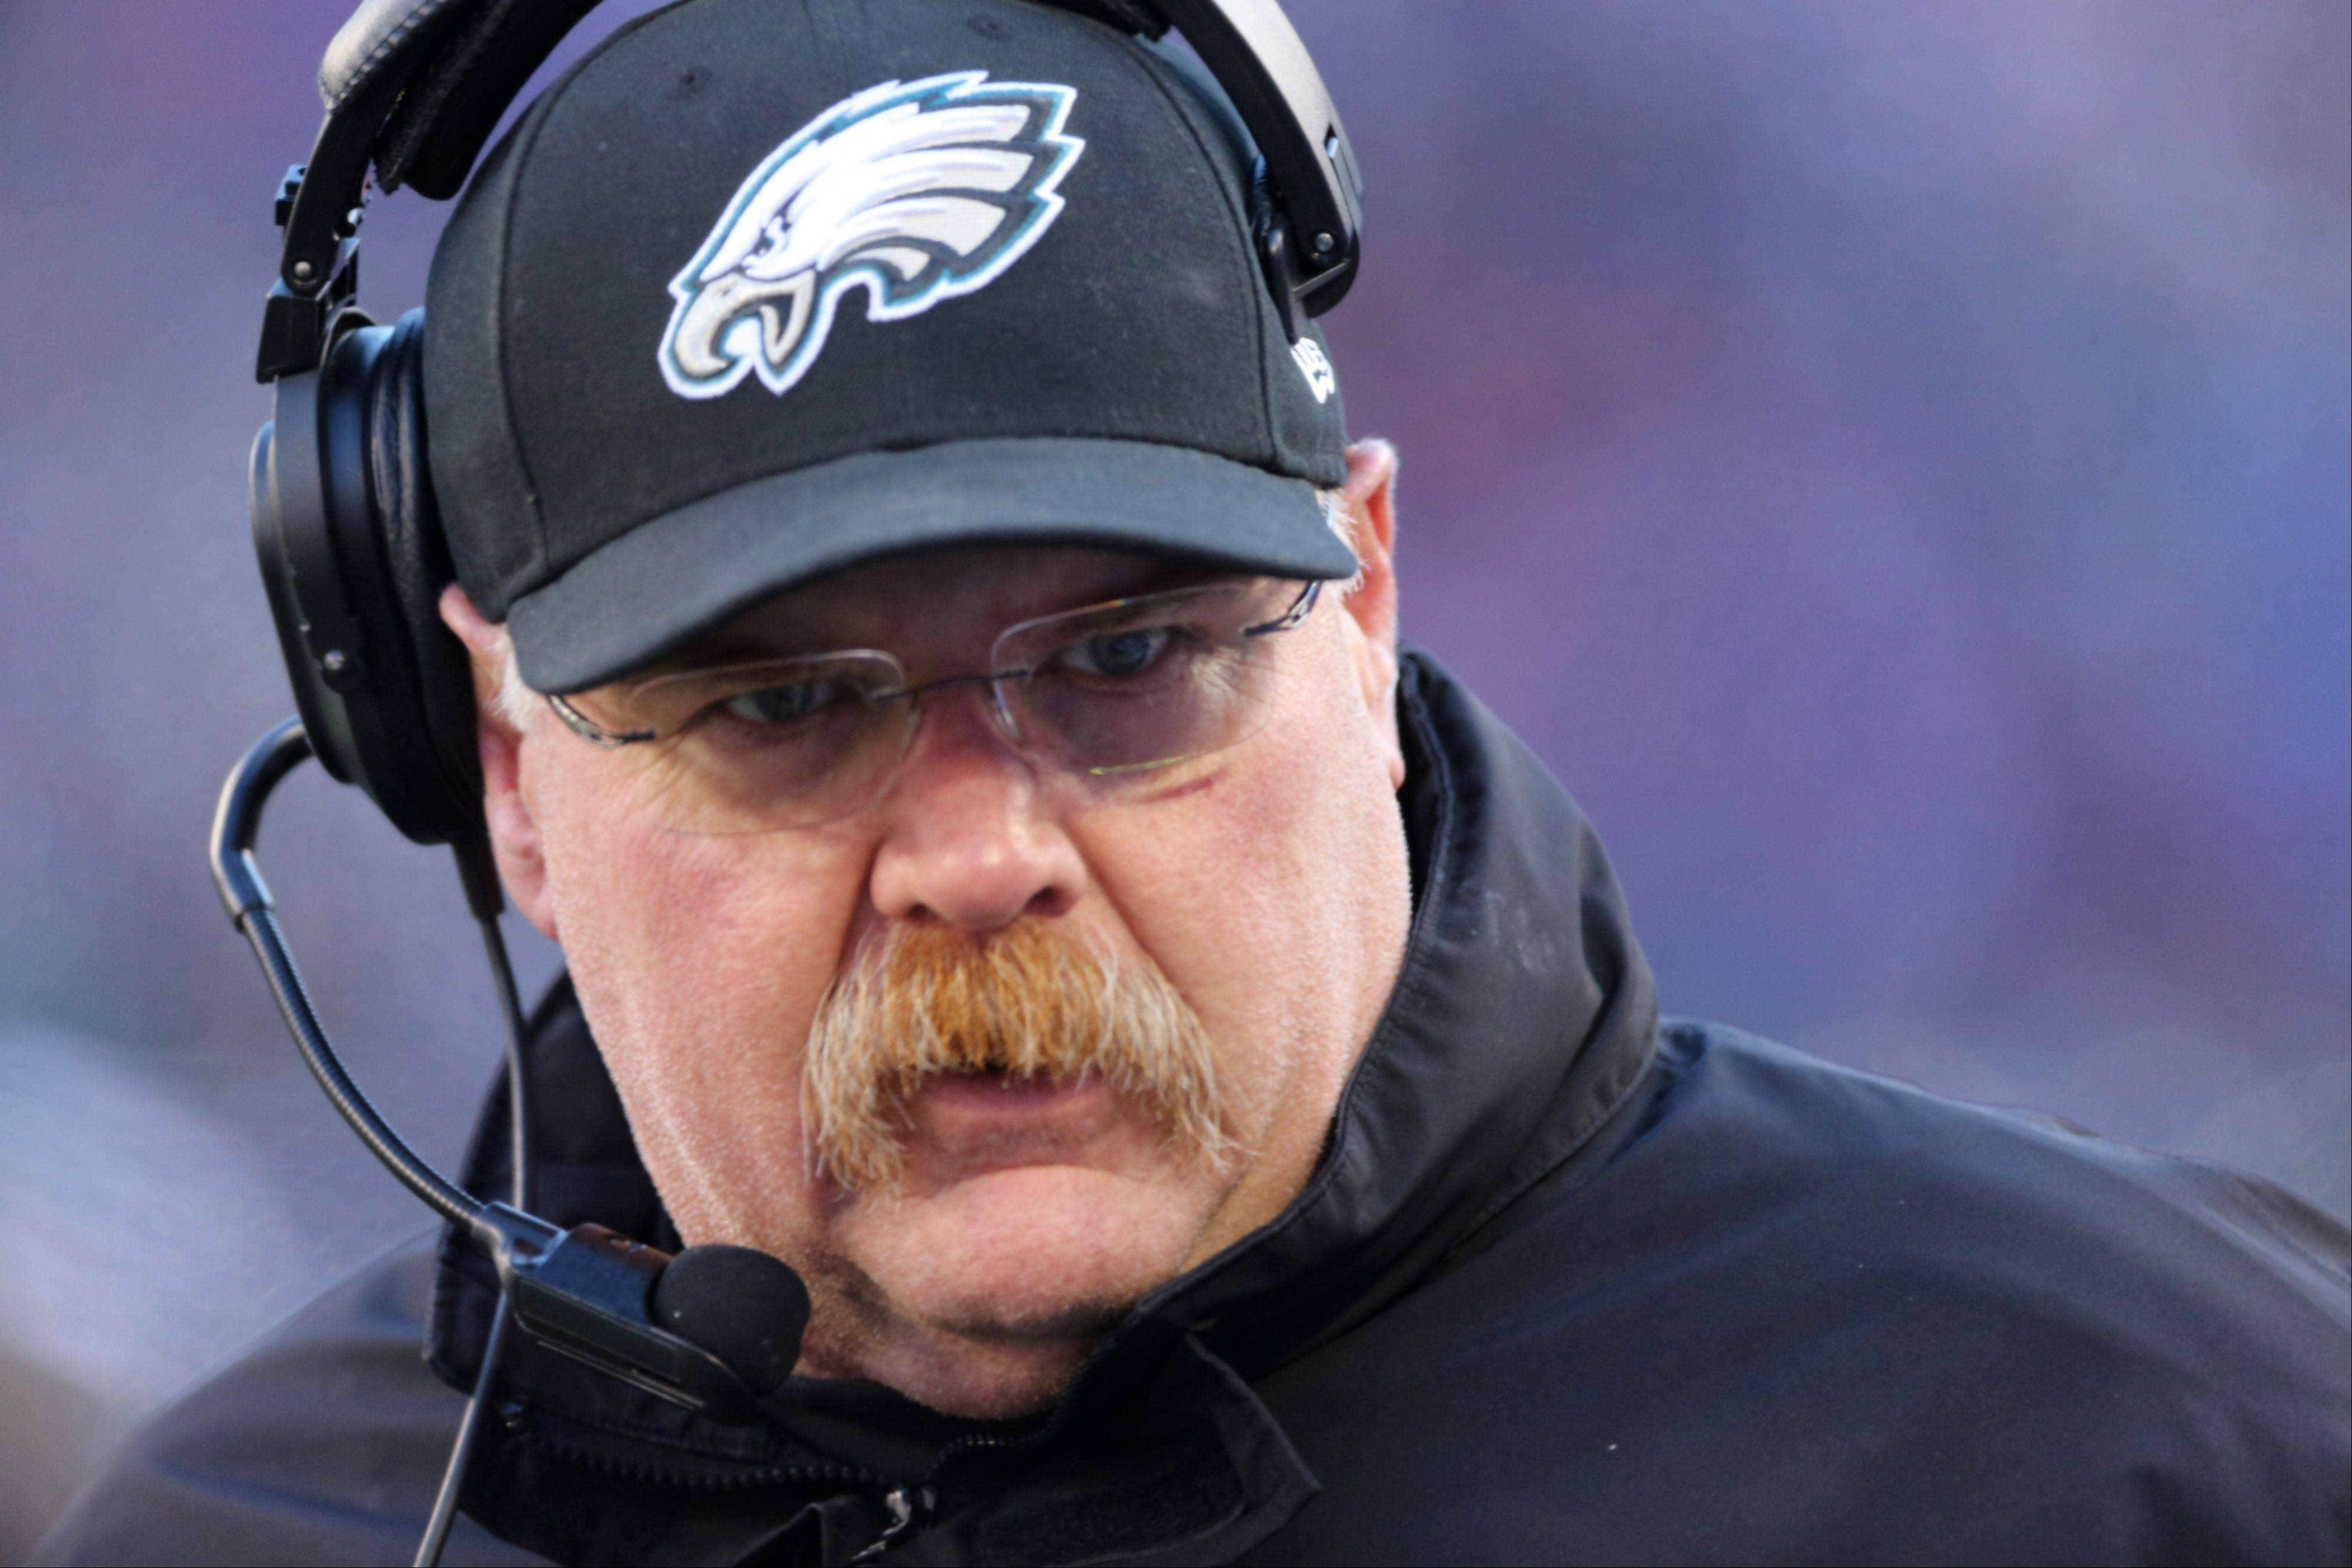 According to a source close to the talks, former Philadelphia Eagles head coach Andy Reid is close to reaching a deal with the Kansas City Chiefs.